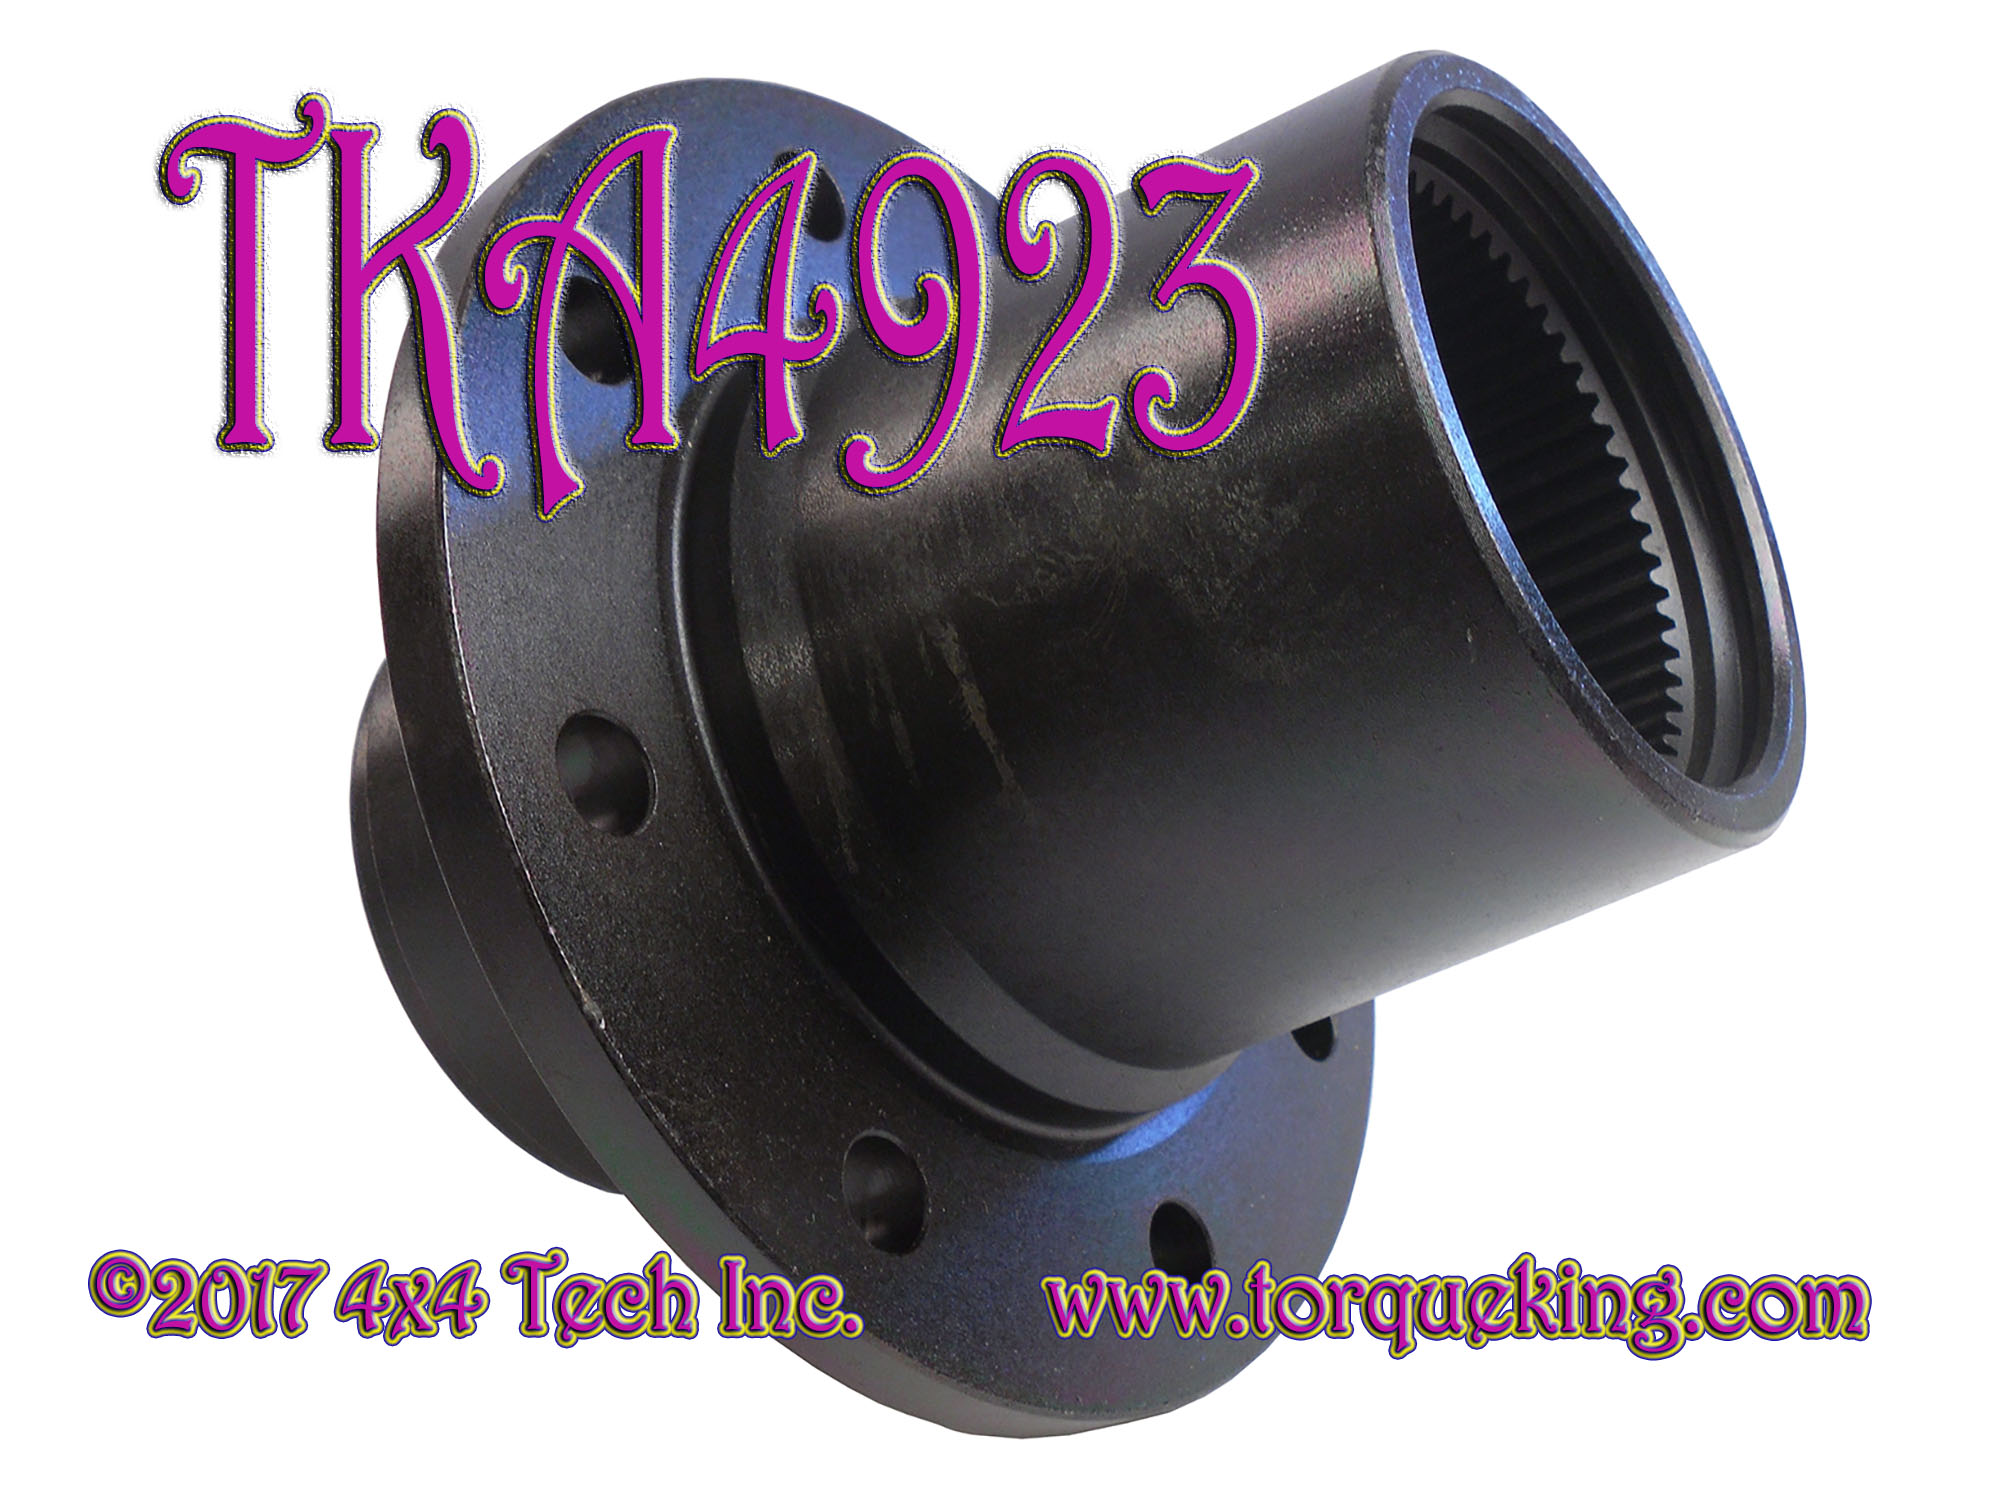 hight resolution of tka4923 torque king 1995 1997 f250 f350 4x4 front hub is a new front wheel hub with timken bearing cups for 1995 1997 ford f250 dana 50ifs and 1995 1997